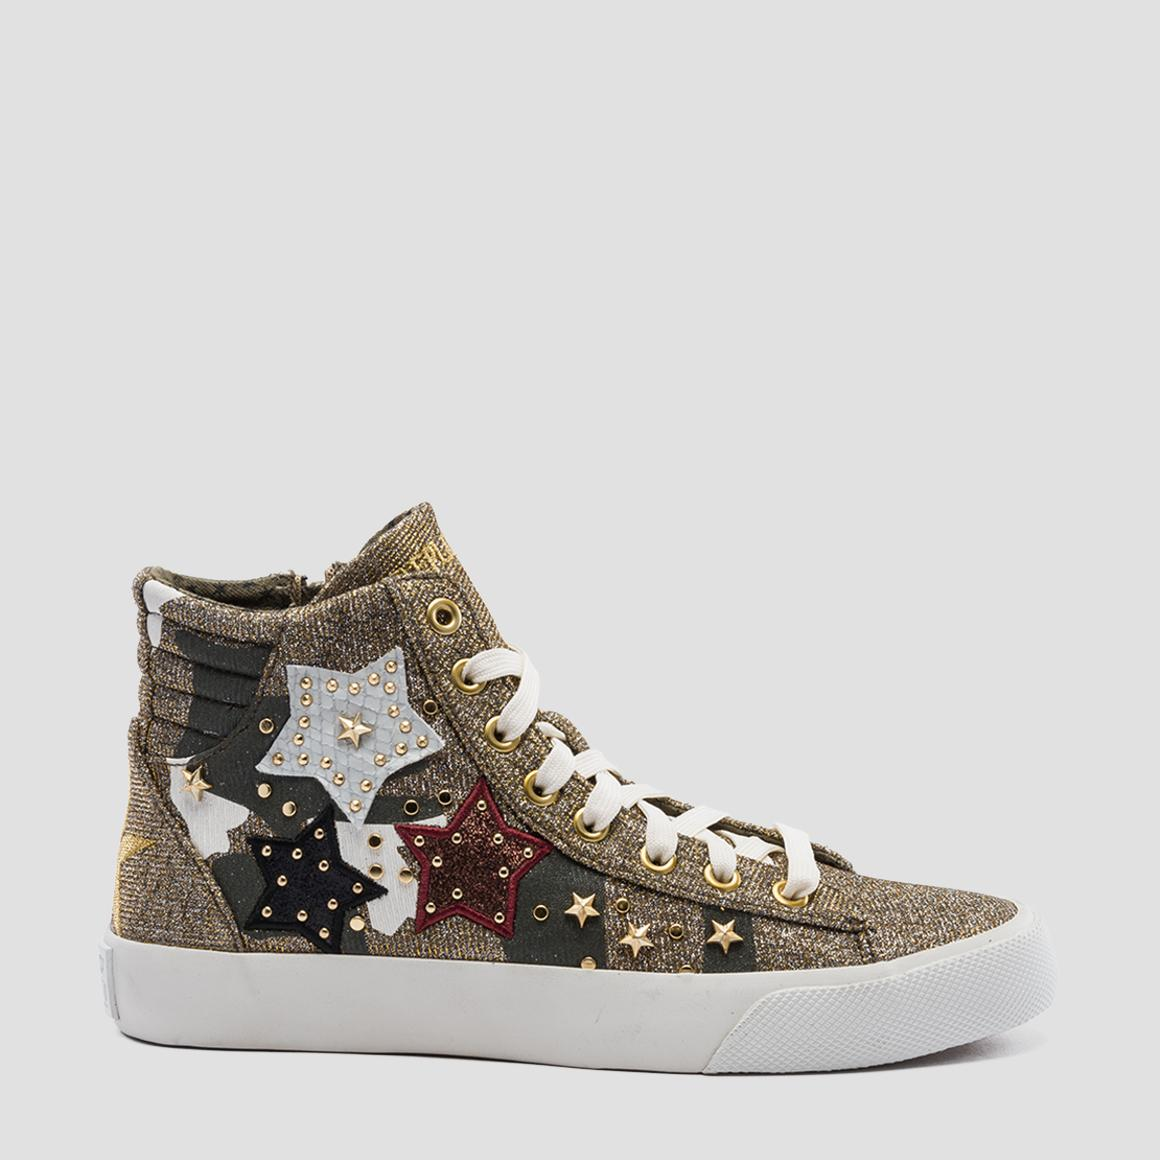 newest 3890a aedab Sneakers donna oro Replay - vende online Rewind